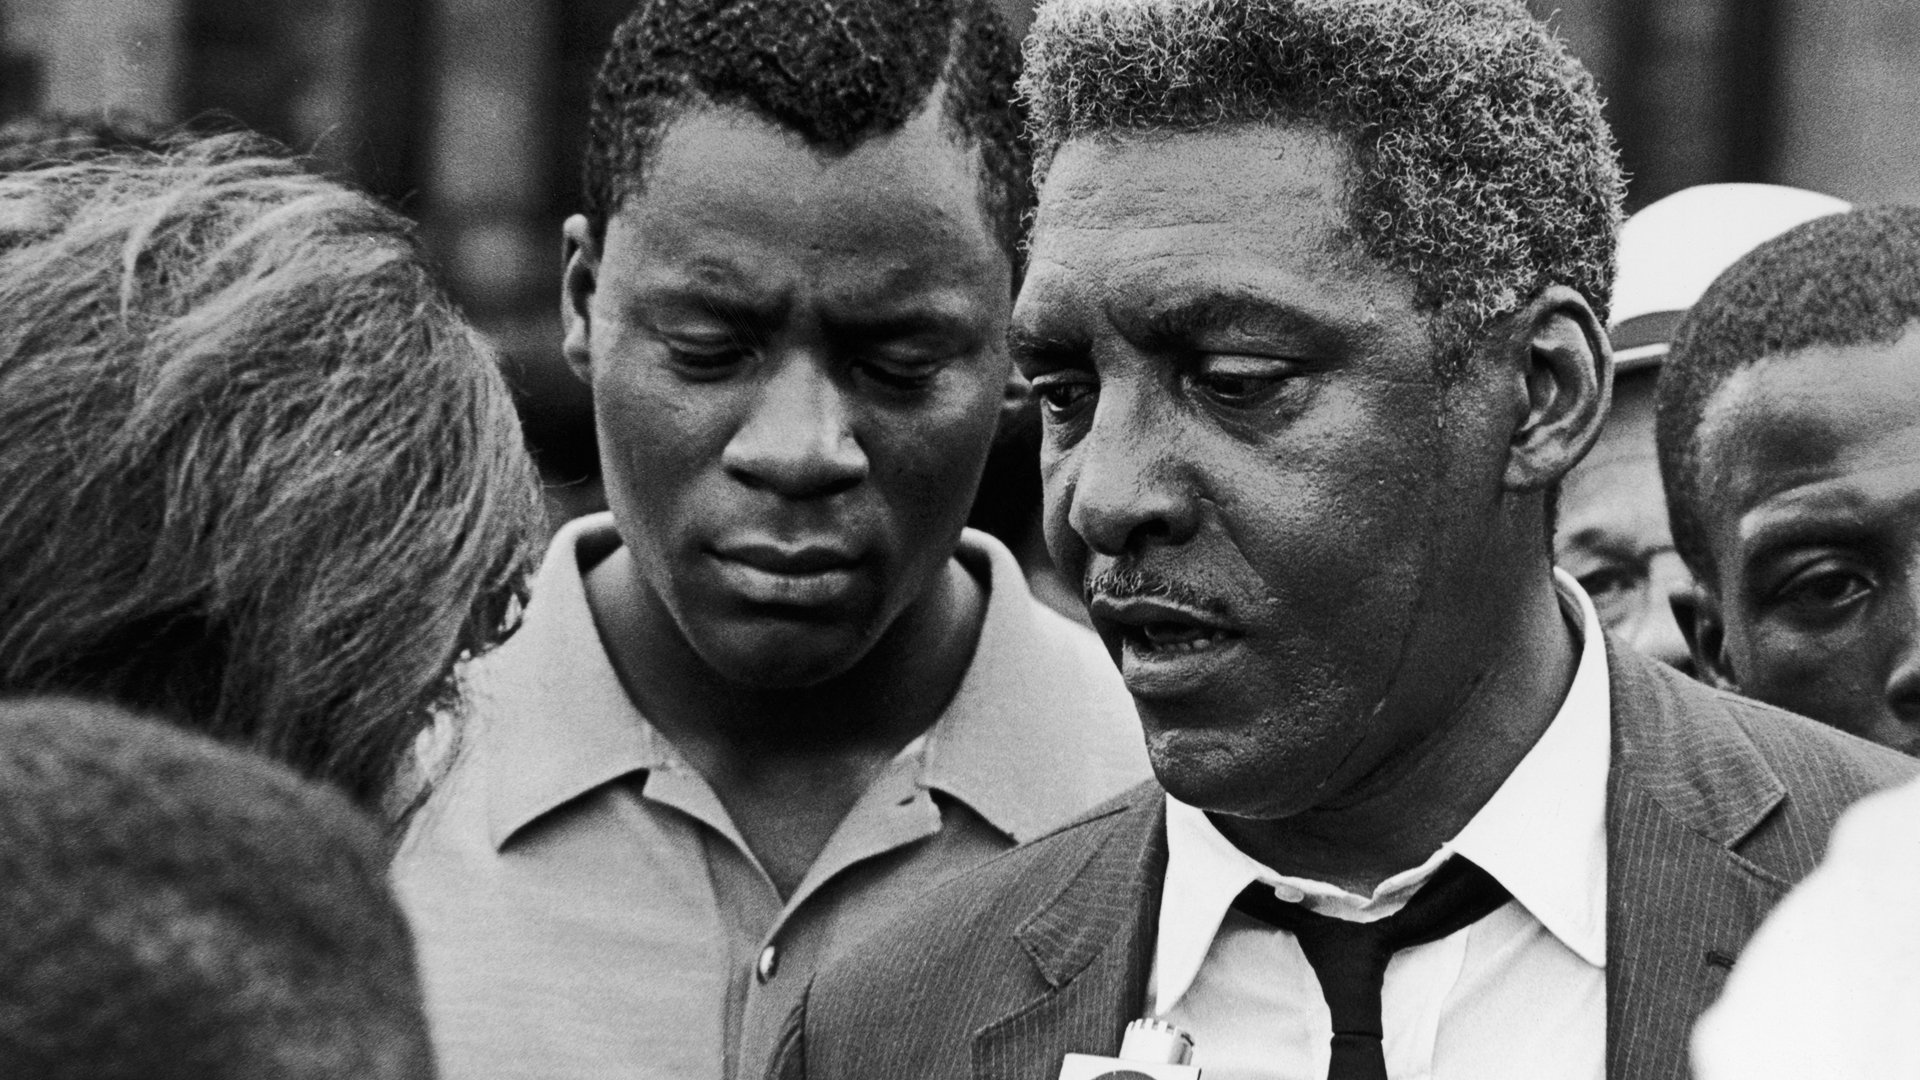 African American civil rights activist Bayard Rustin talks to a reporter during the Harlem Riots in Manhattan on July 23, 1964. (Credit: Express/Hulton Archive/Getty Images)